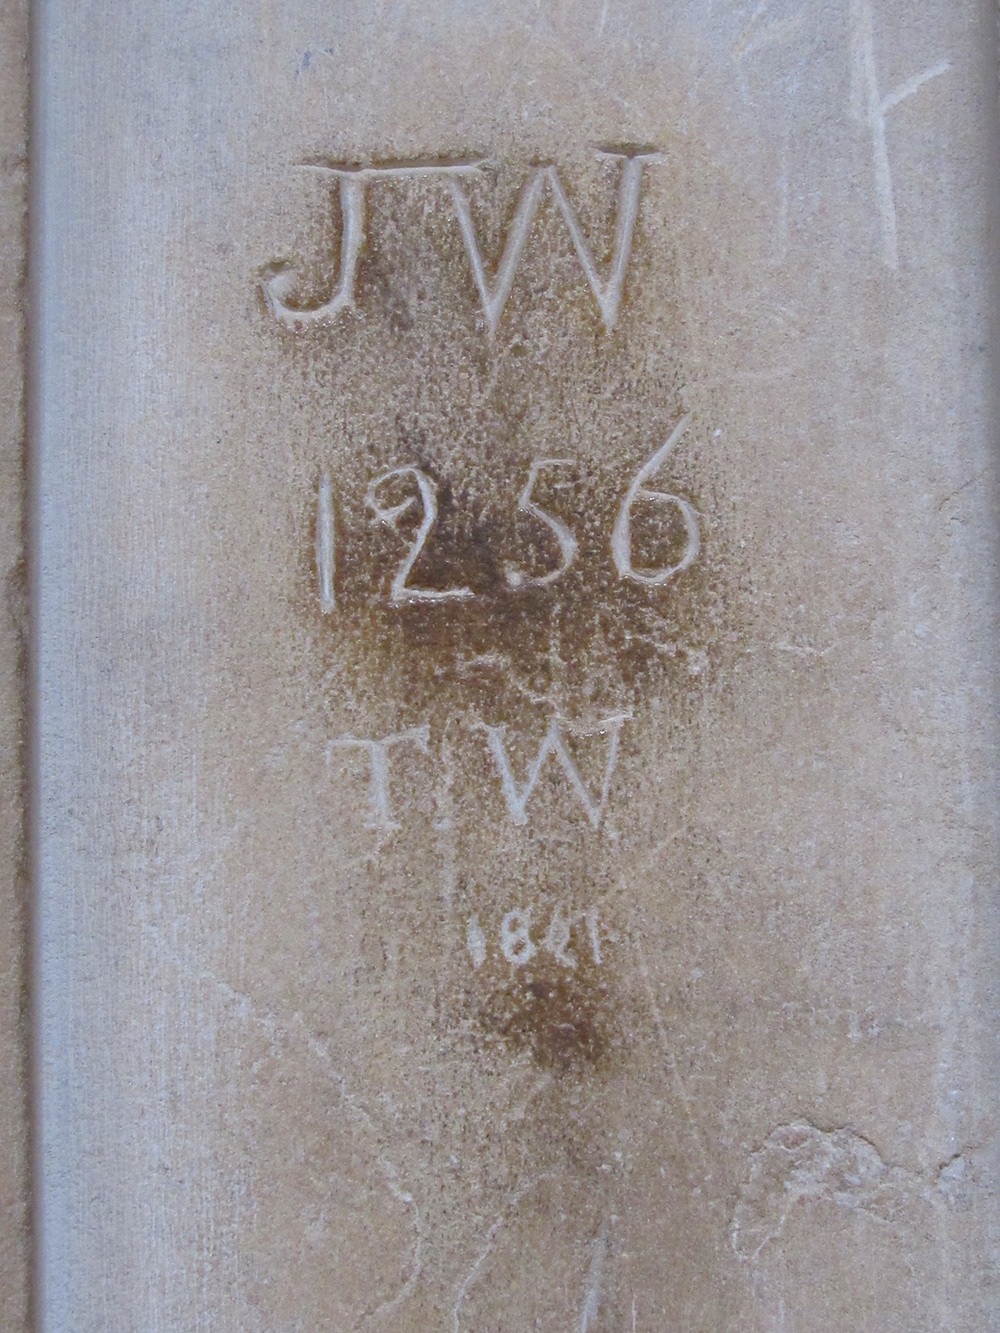 graffiti from 1256 and 1821 at Lincoln Cathedral